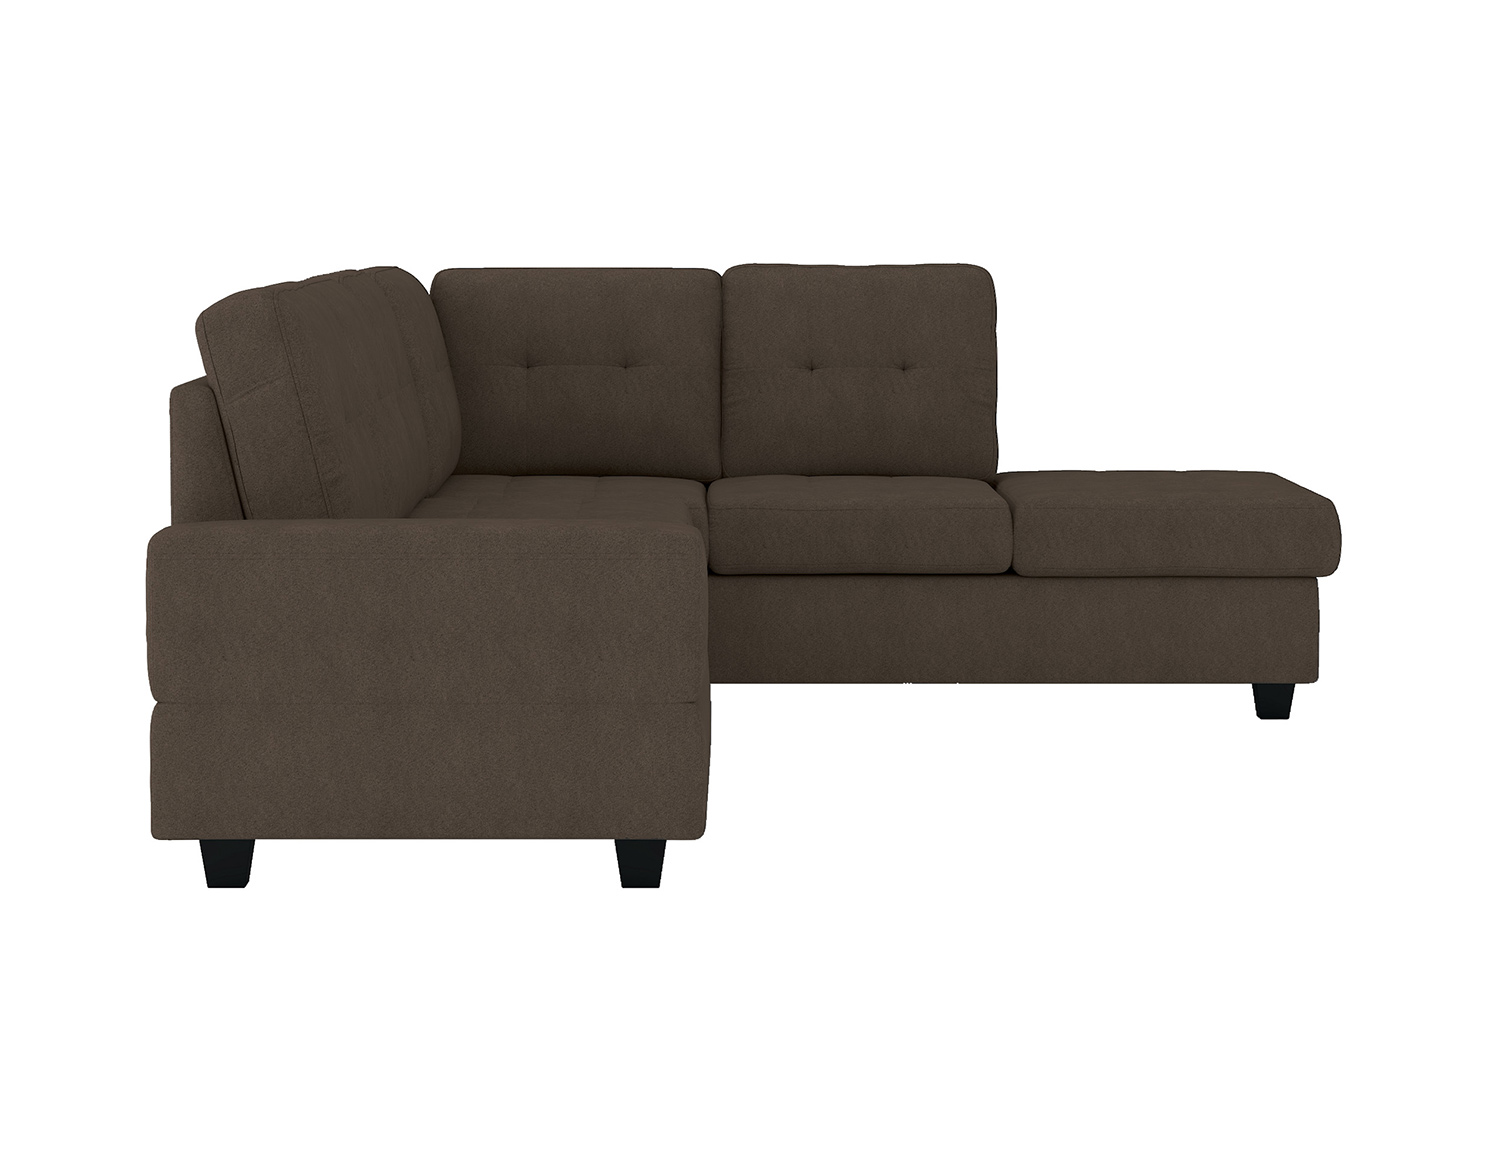 Homelegance Maston Sectional Sofa Set - Chocolate